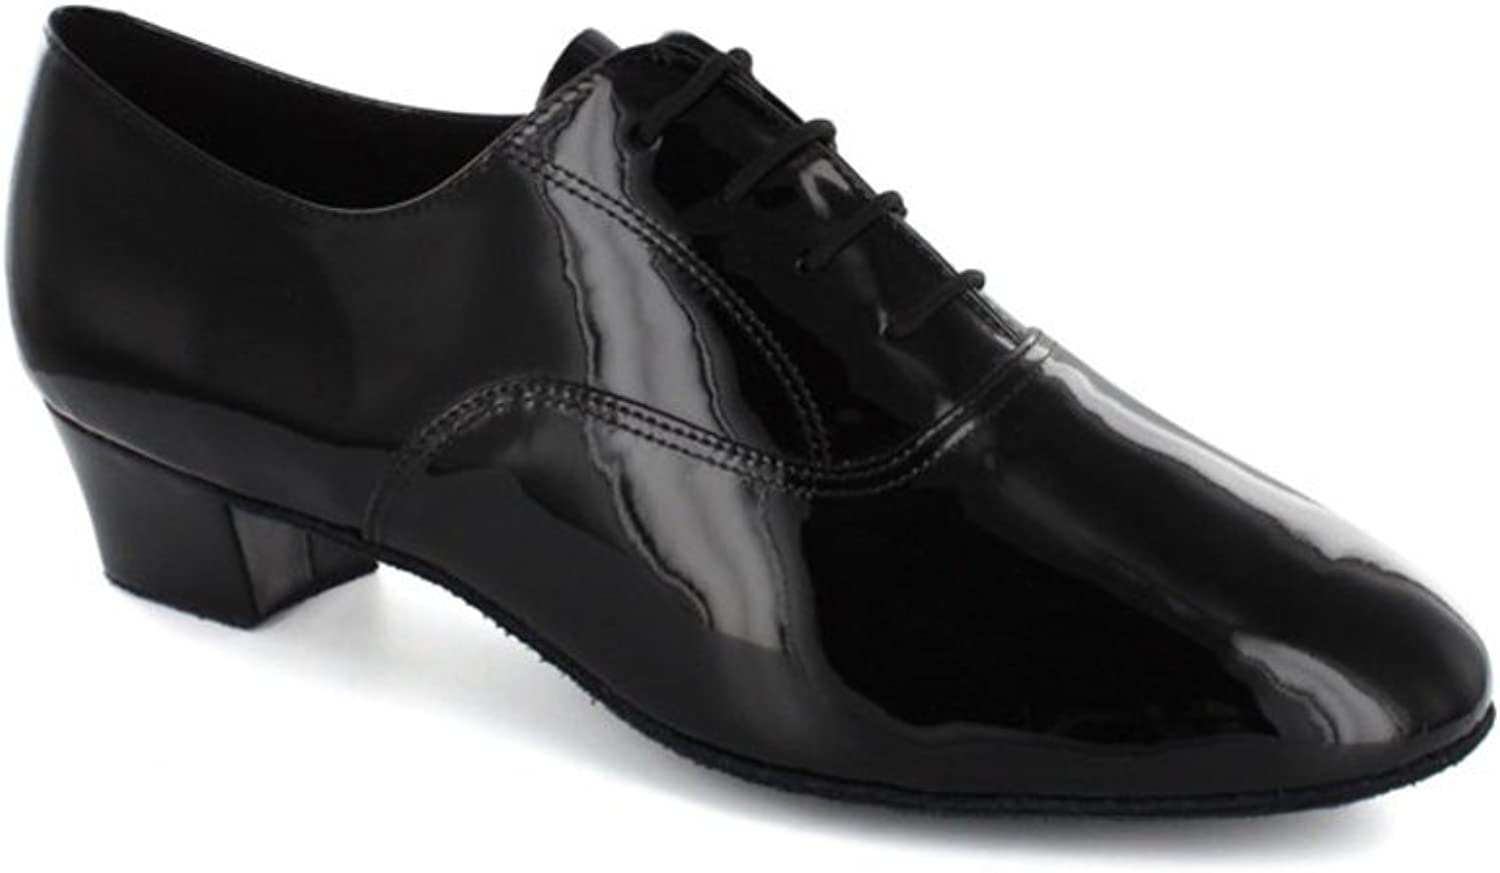 Men's Latin Dance shoes Black Soft Dancing shoes at The end of Non-Slip wear Dance shoes